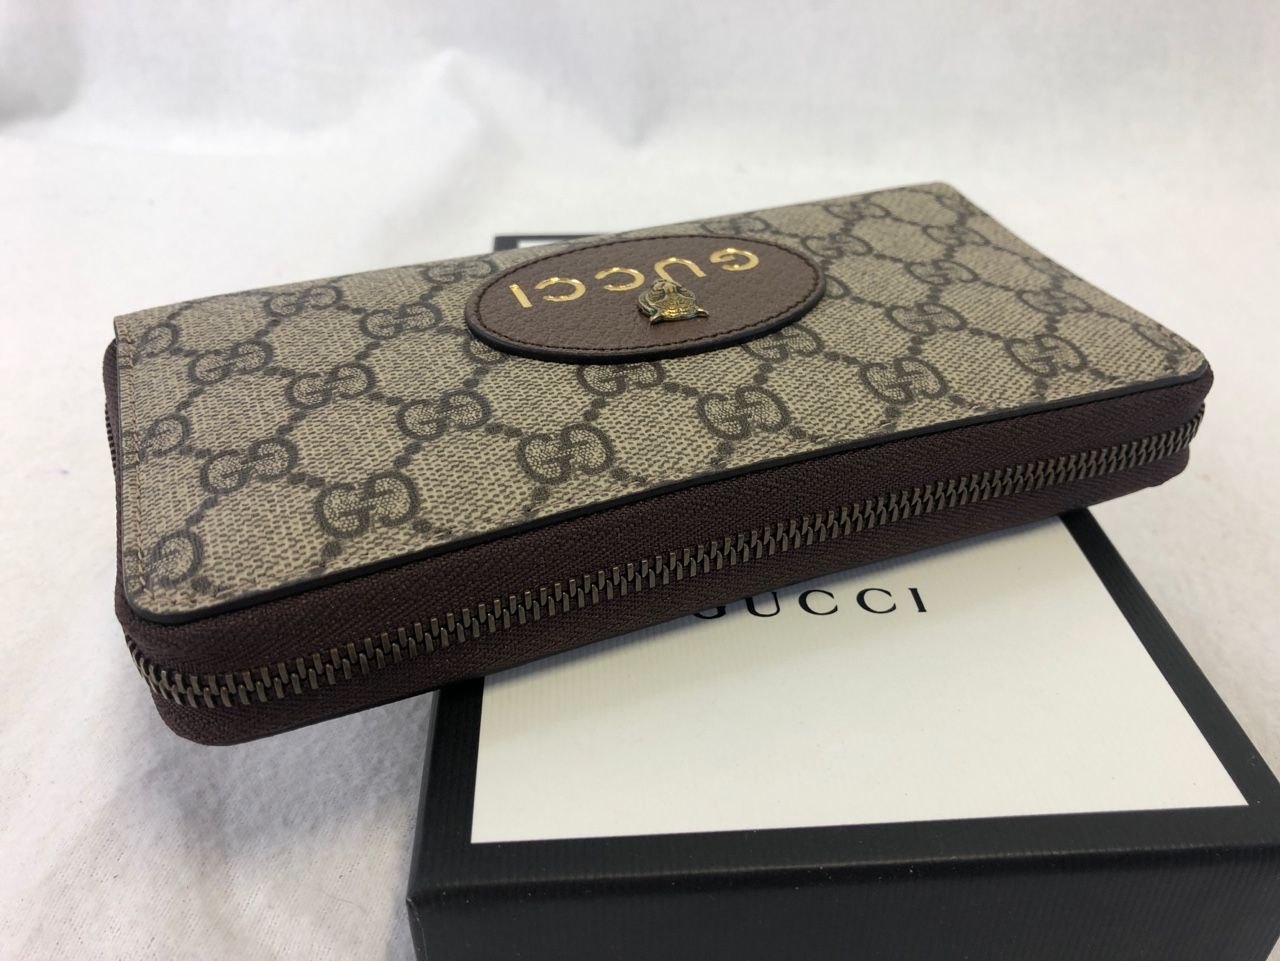 Gucci Neo Vintage GG Supreme zip around wallet GG Supreme Style # 473953 K9GOT 8861